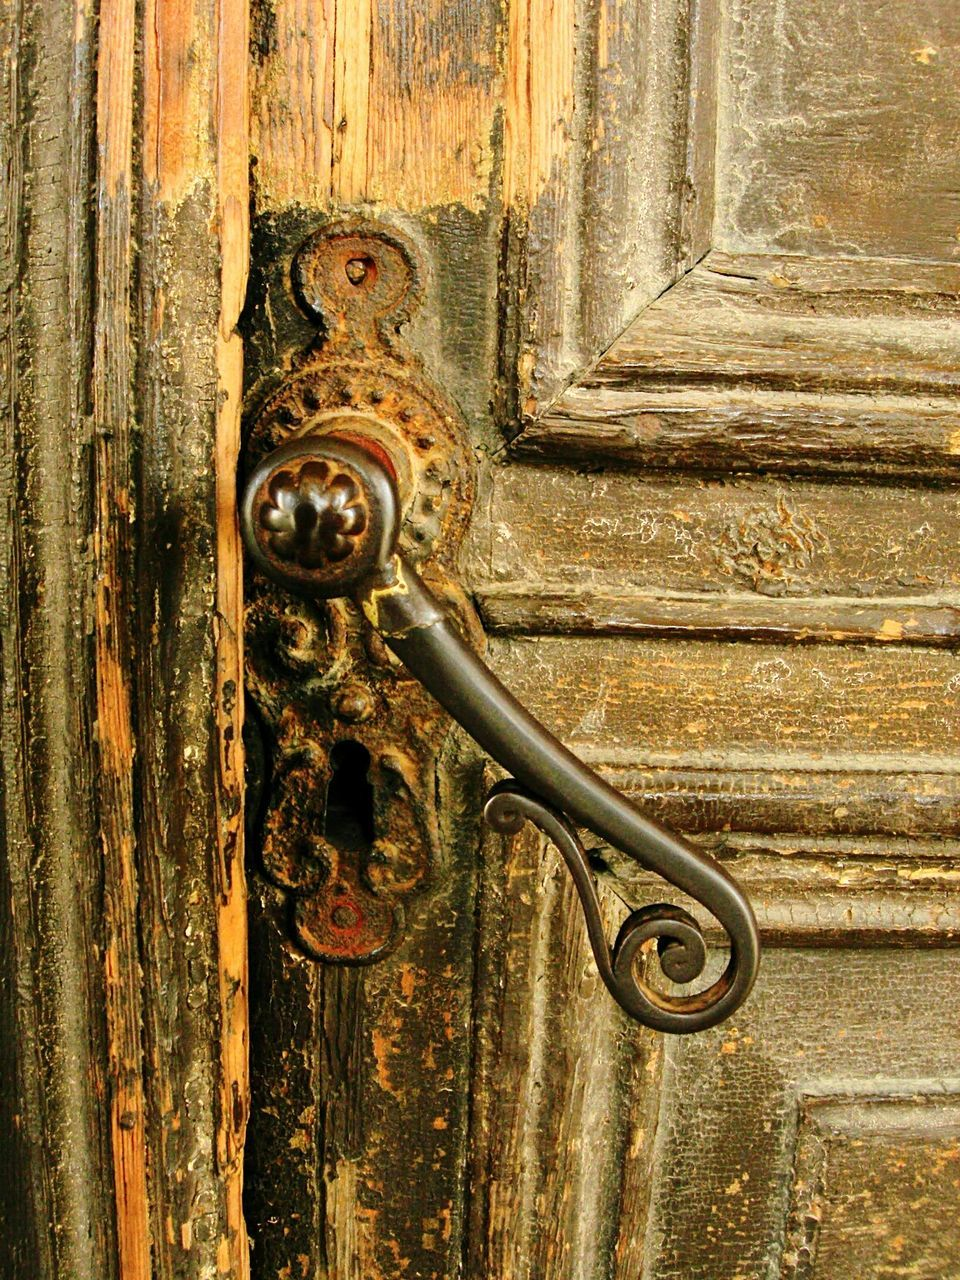 door, wood - material, ornate, outdoors, no people, close-up, day, textured, architecture